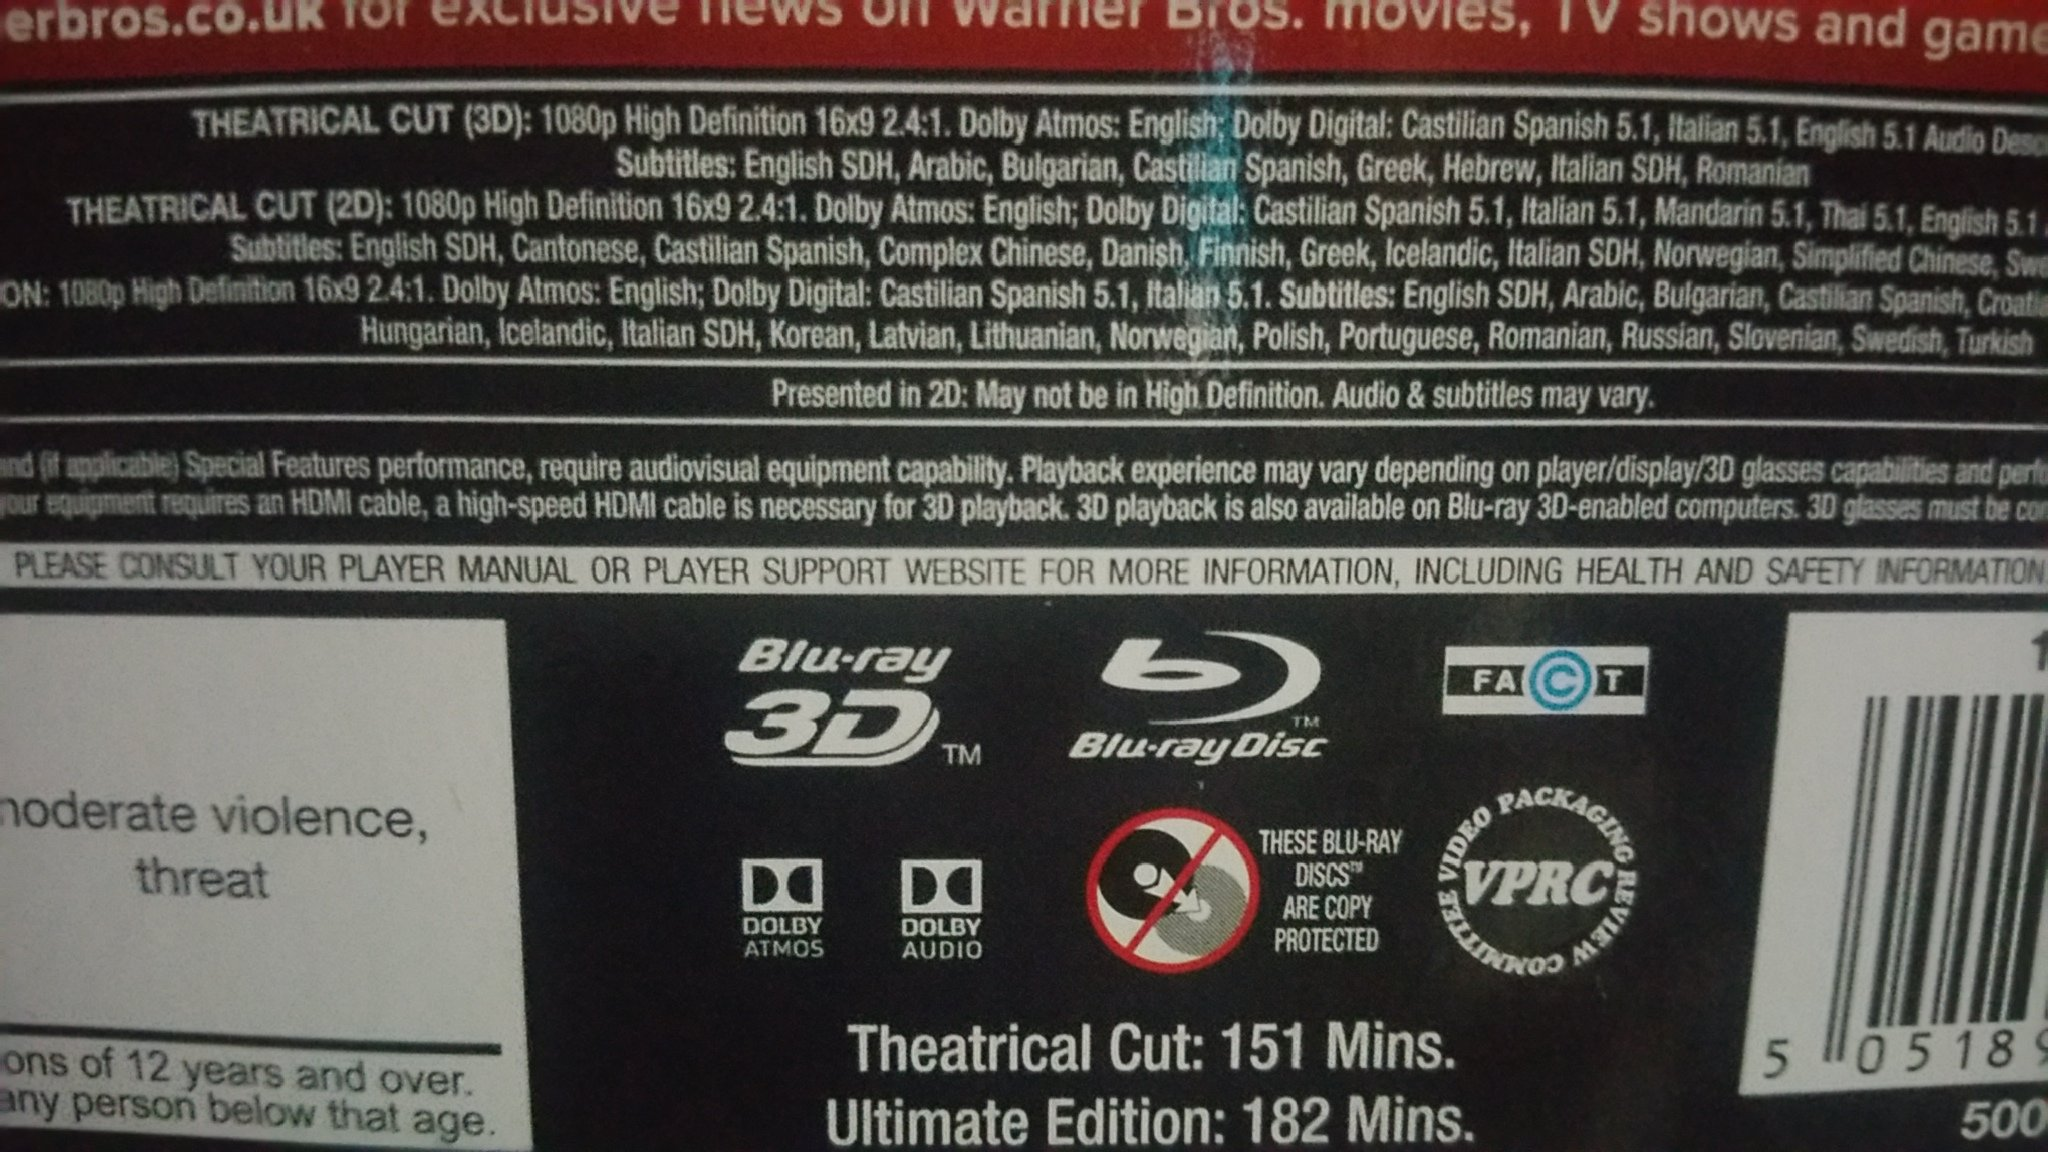 Question - How do I tell if a Blu-Ray disk is Atmos/DTS:X